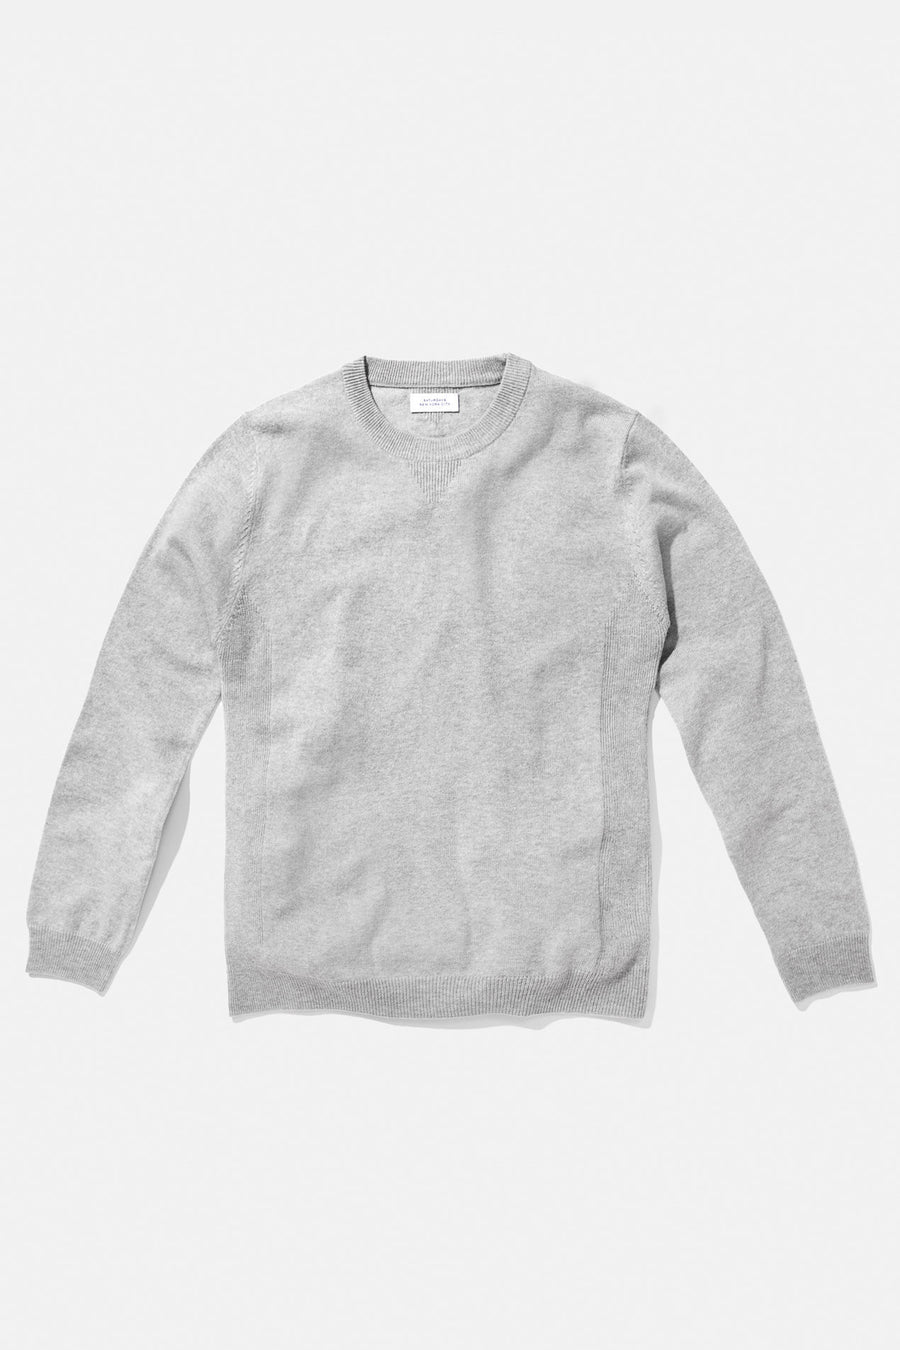 Everyday Classic Sweater - Ash Heather - Pavilion